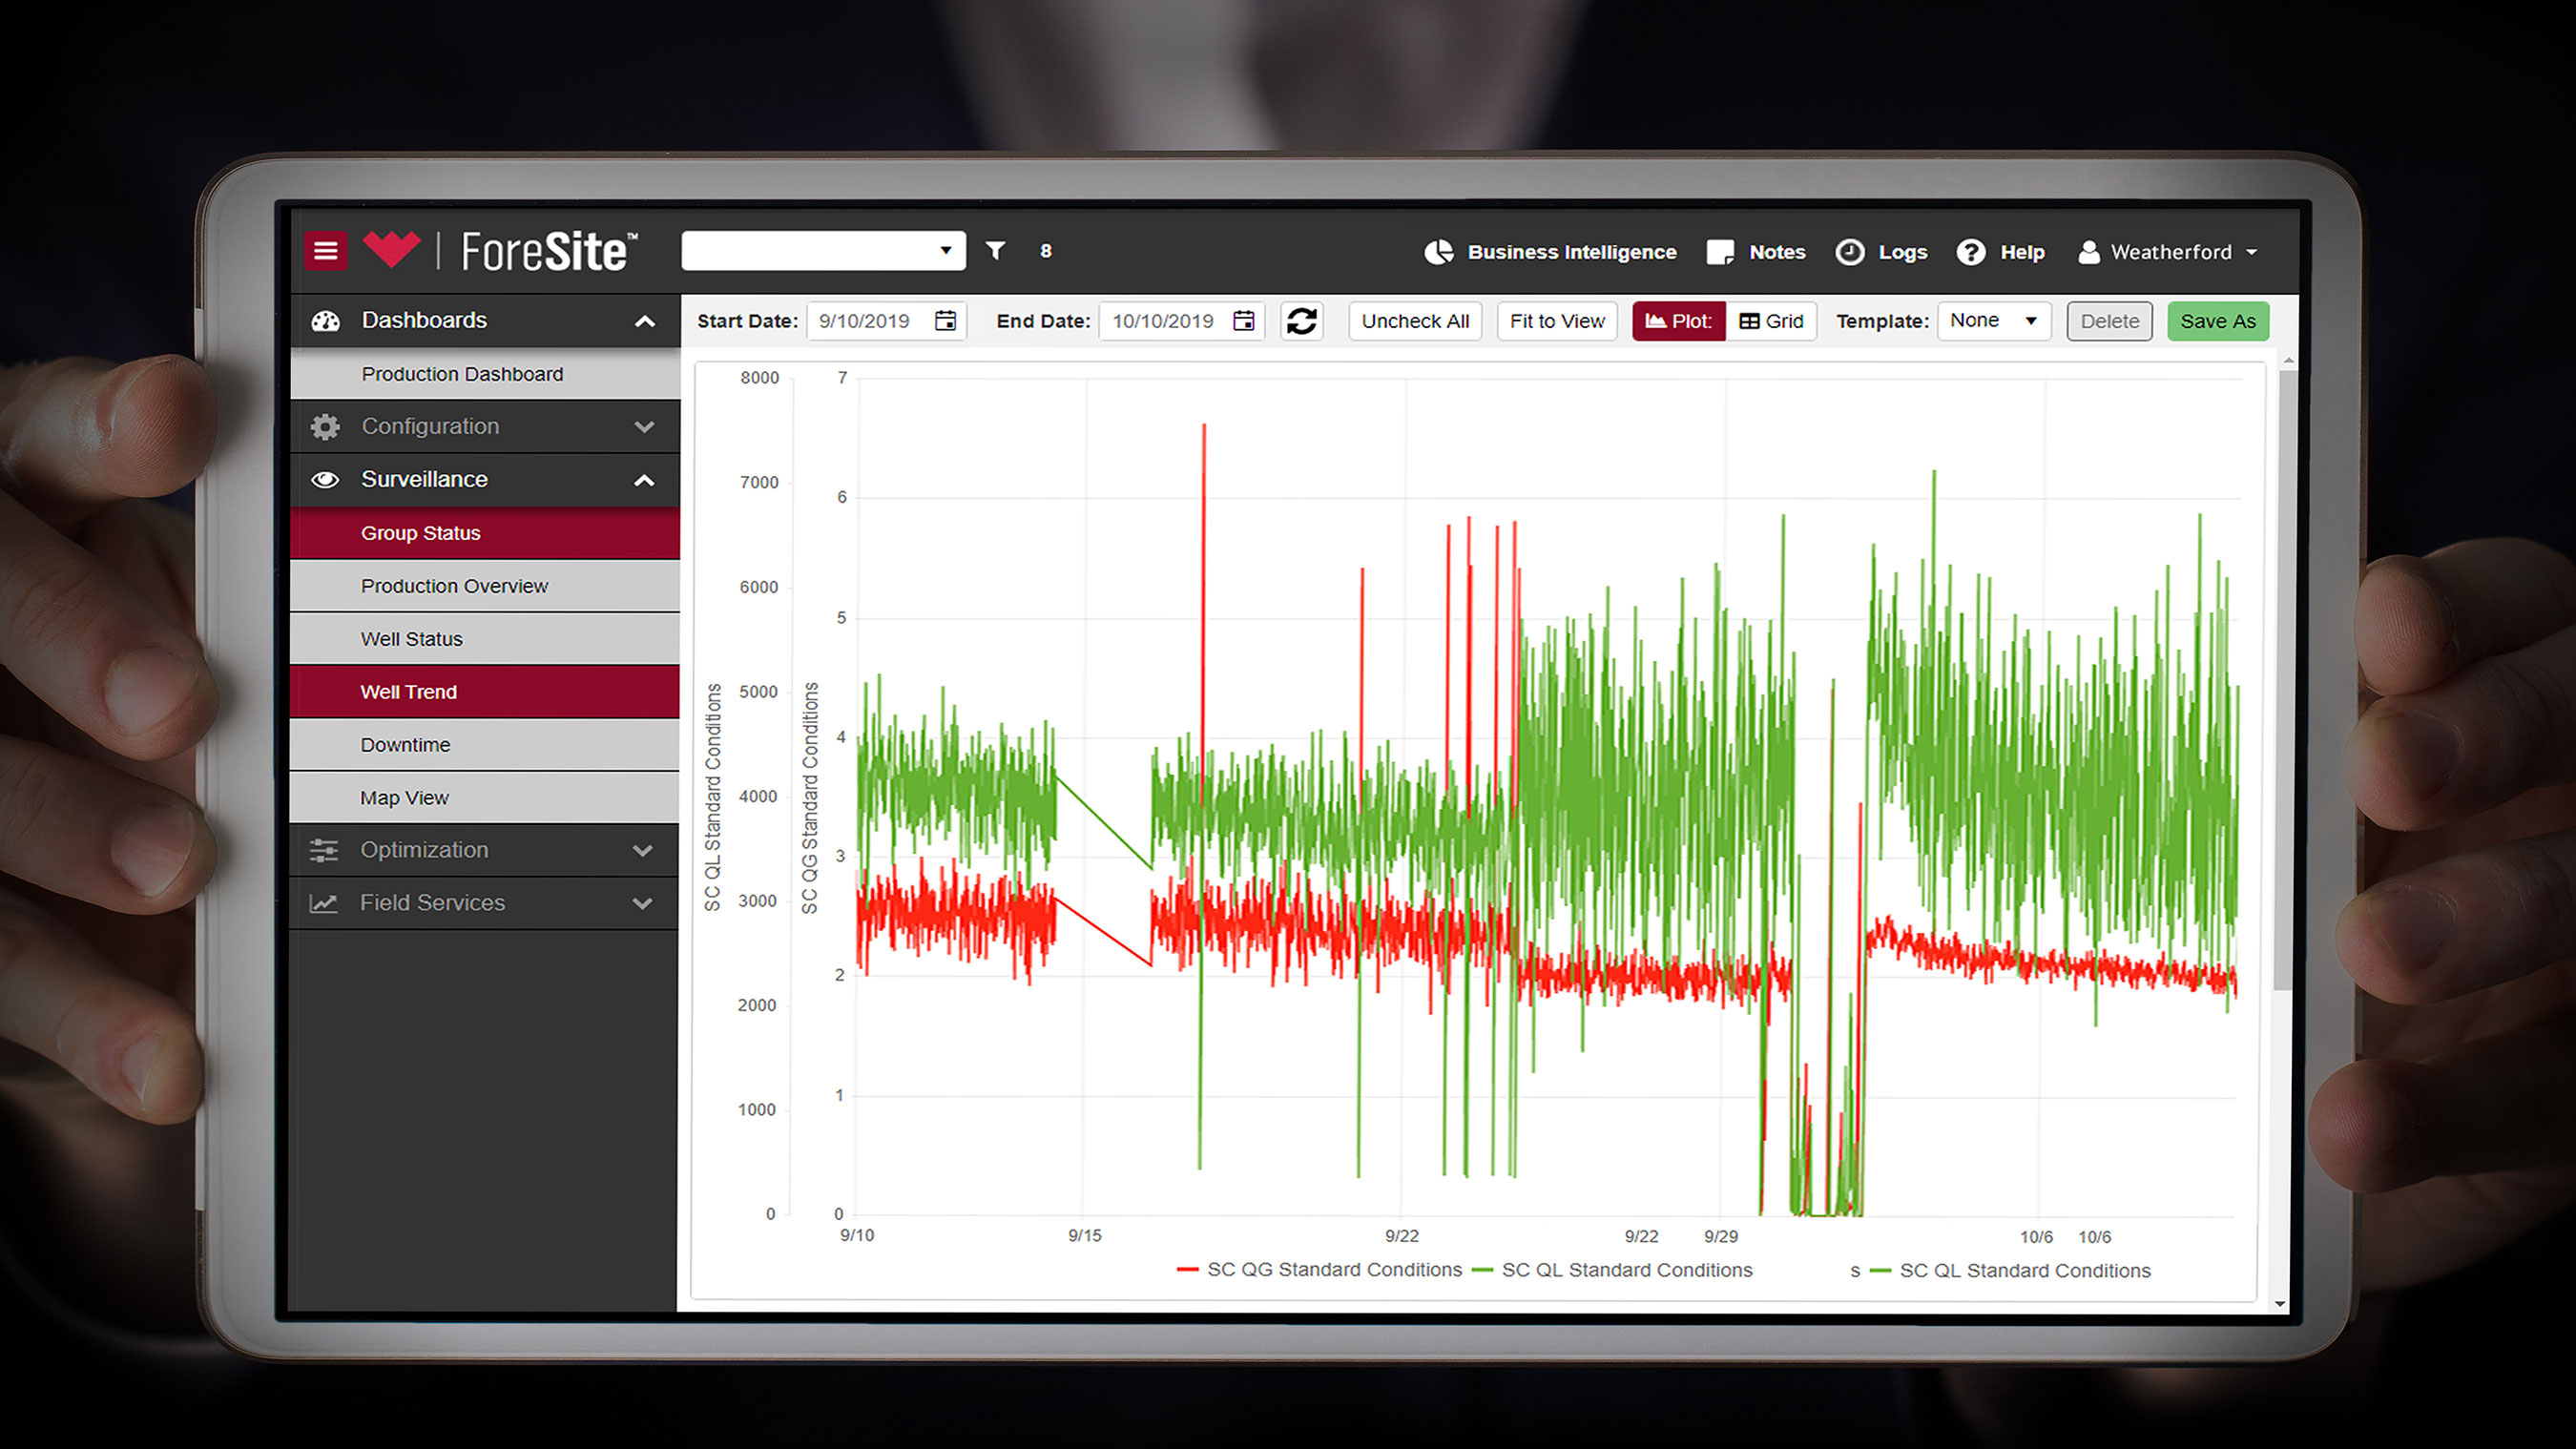 Intuitive dashboards display real-time flow data to reveal true reservoir behavior from any tablet or smartphone, anywhere in the world.